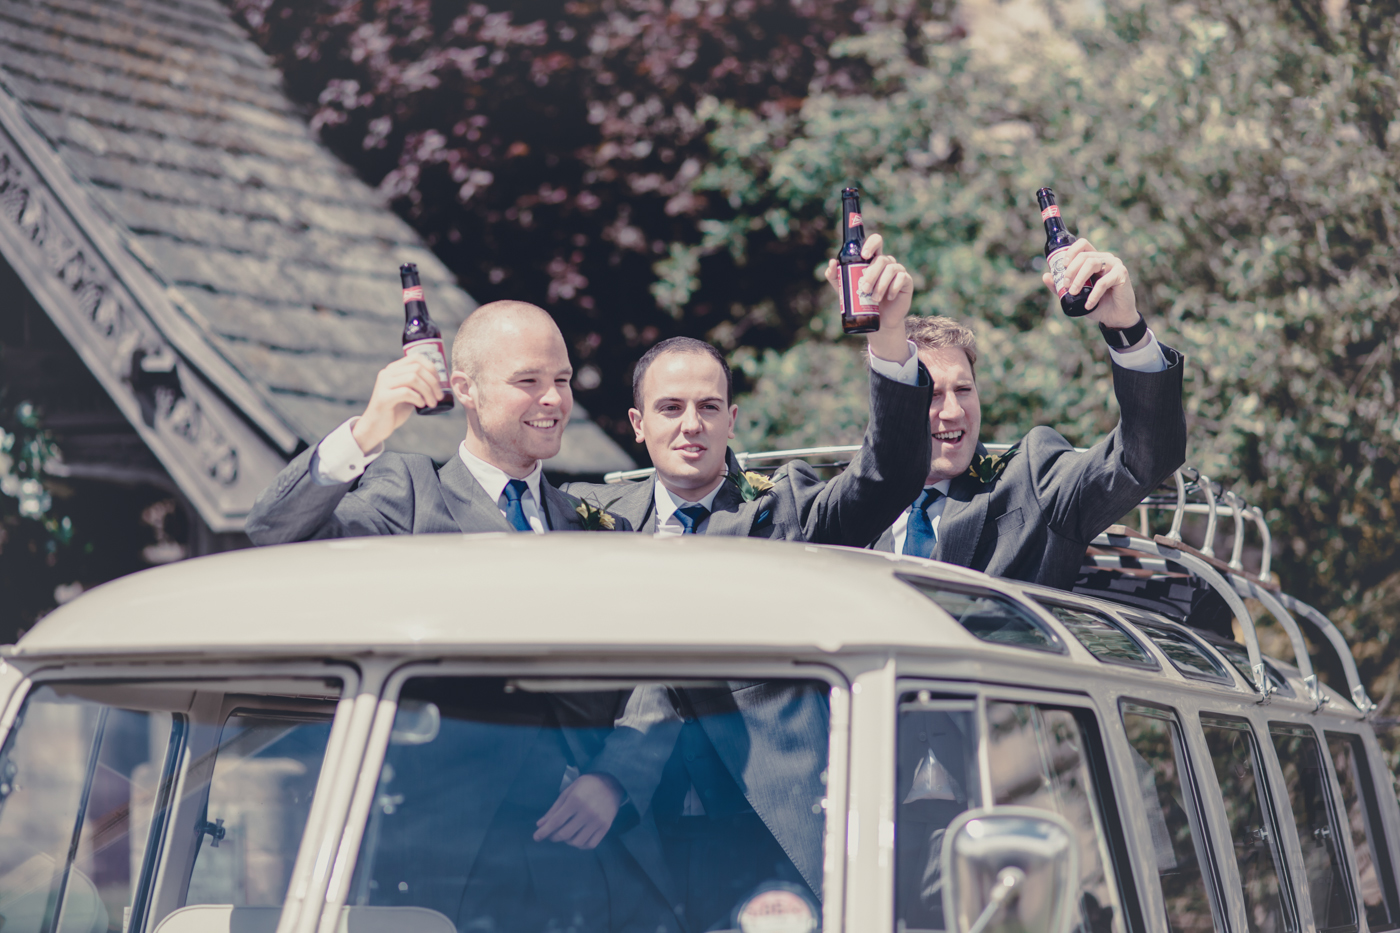 276 - Chris and Natalies Wedding (MAIN) - DO NOT SHARE THIS IMAGES ONLINE -2.JPG